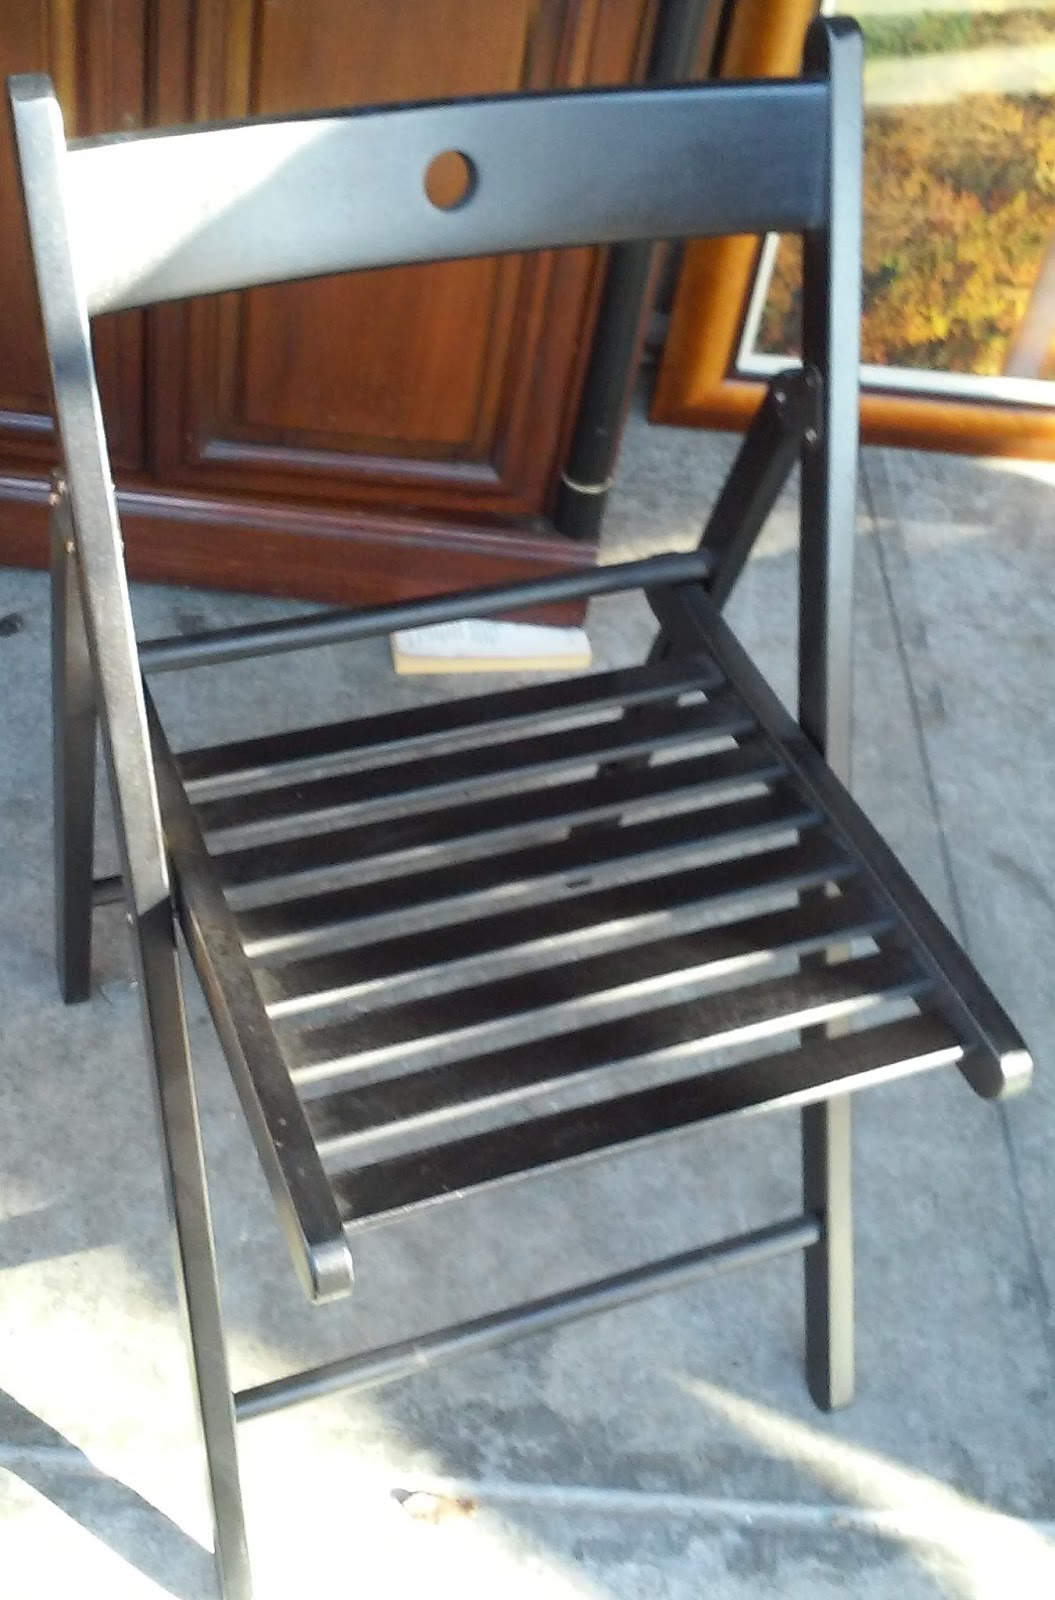 Modern Folding Chairs Uhuru Furniture And Collectibles Sold Modern Wood Folding